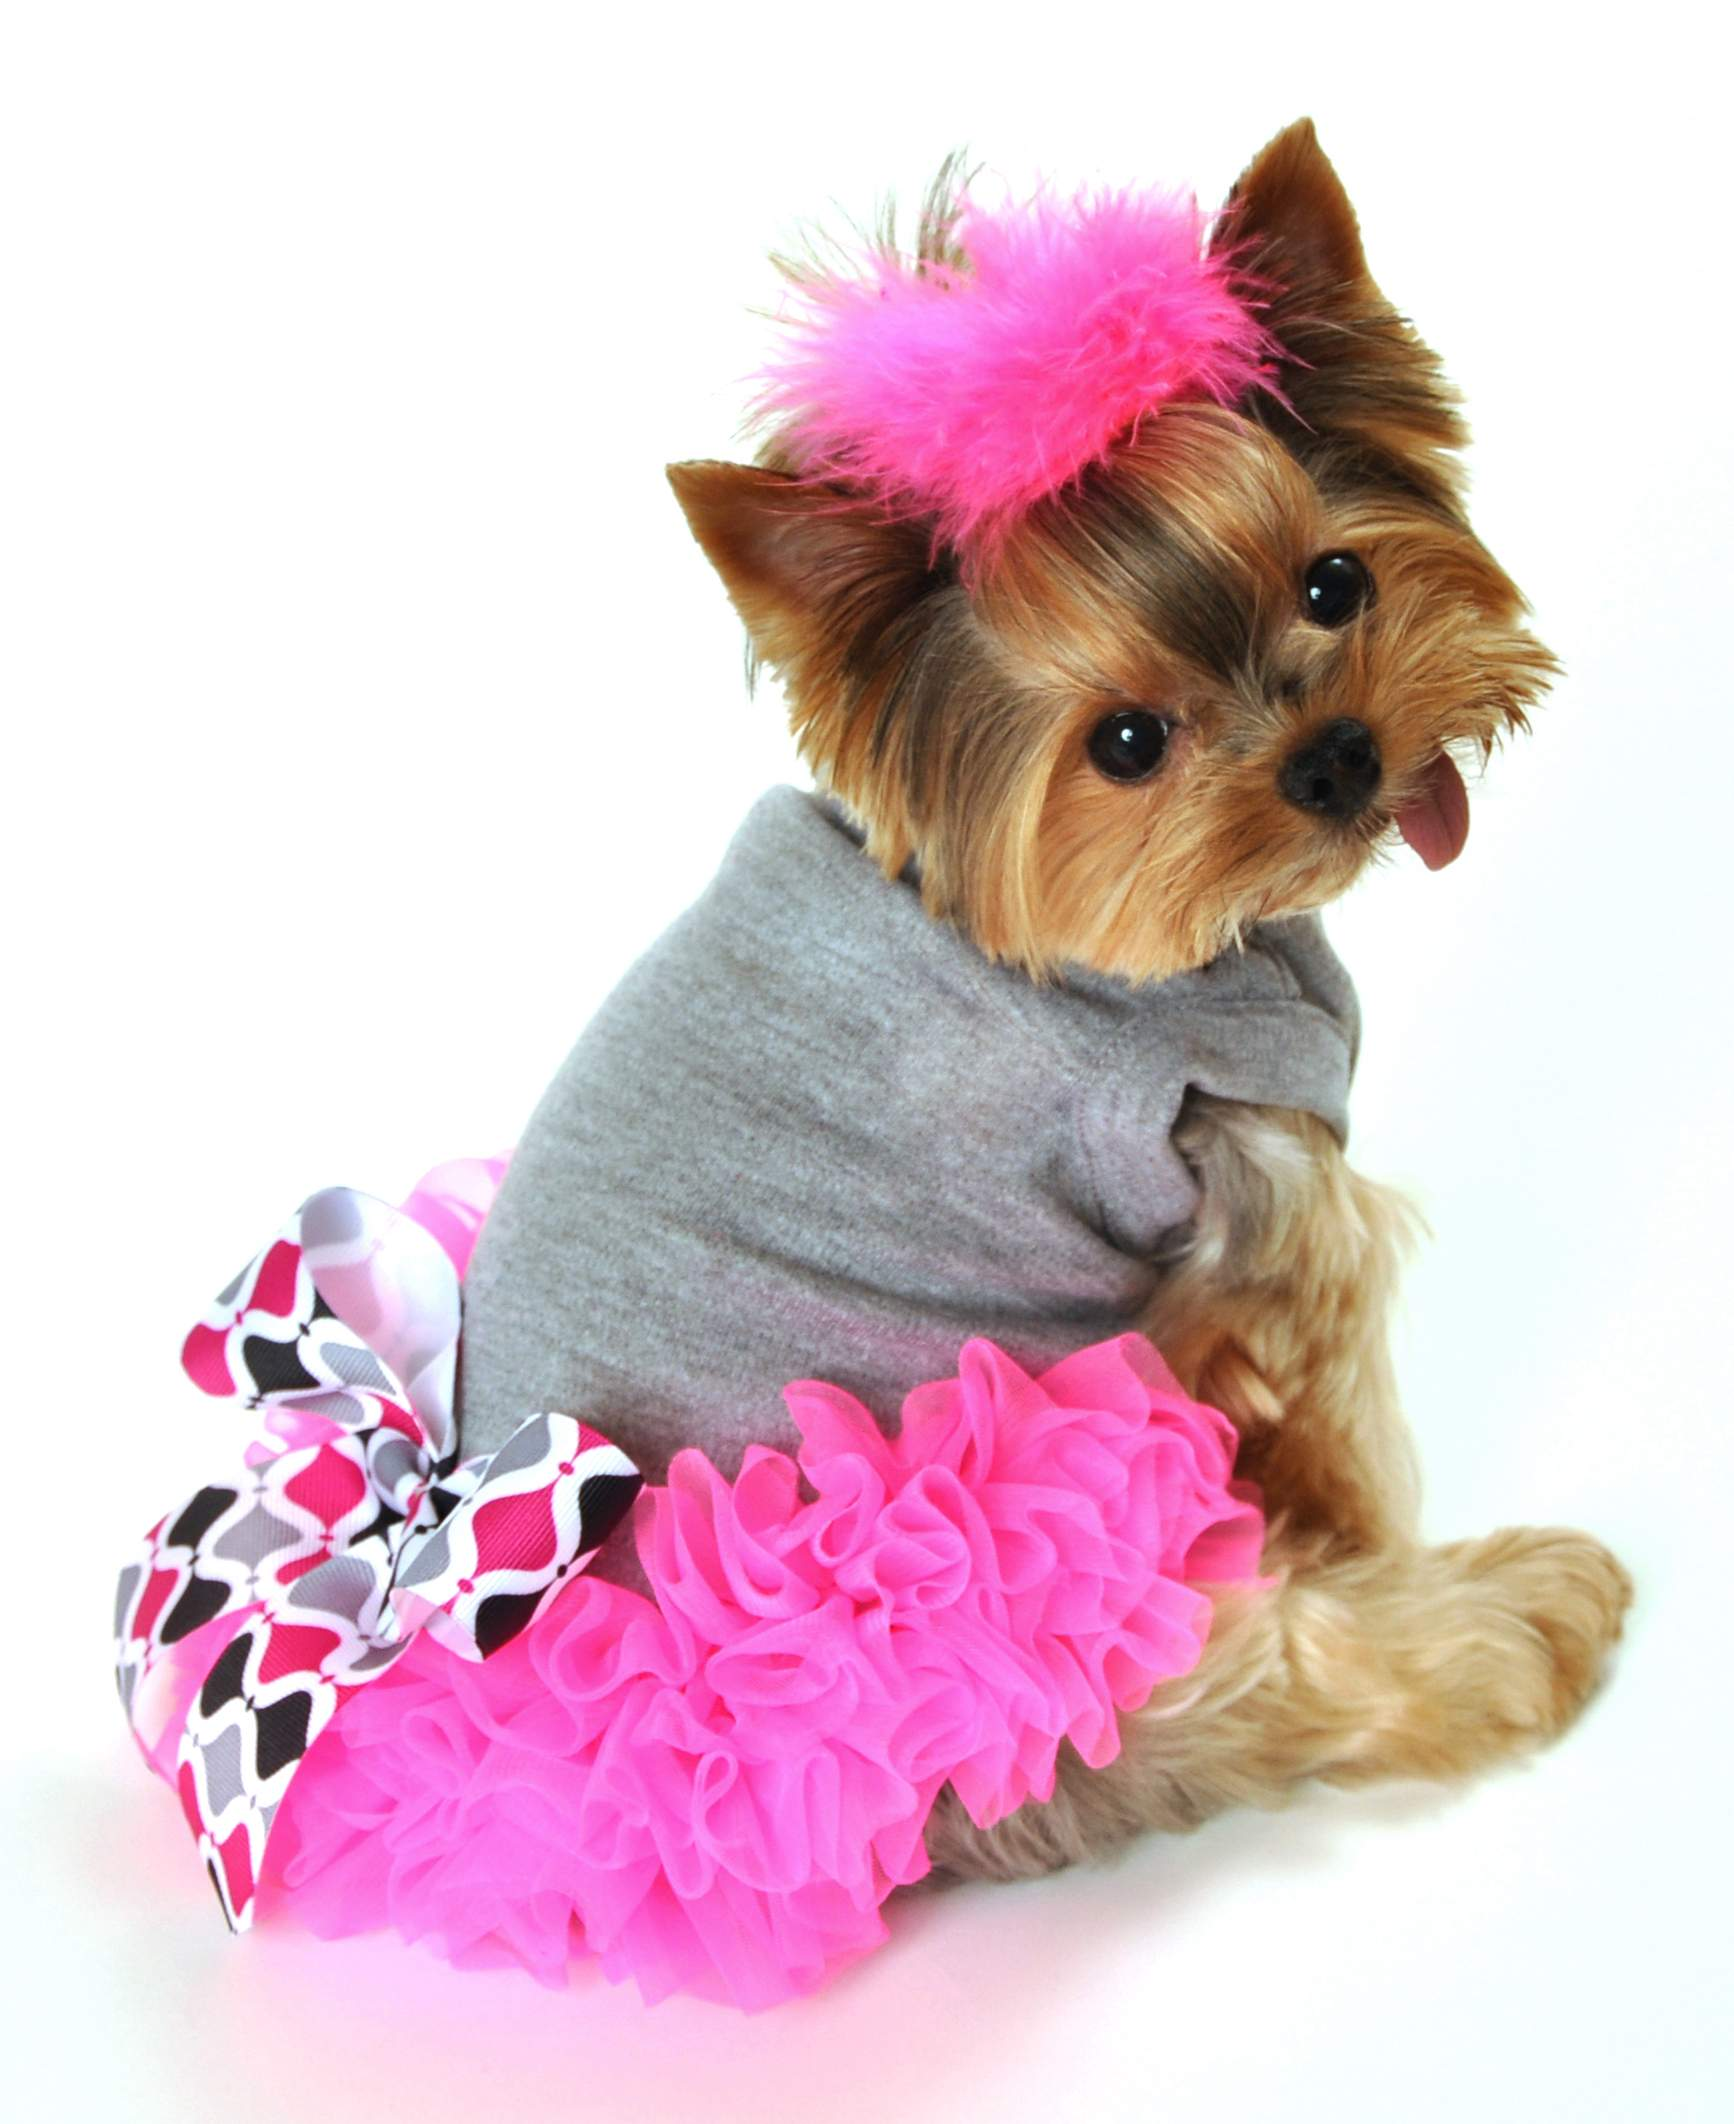 Dog Dress photo - 1